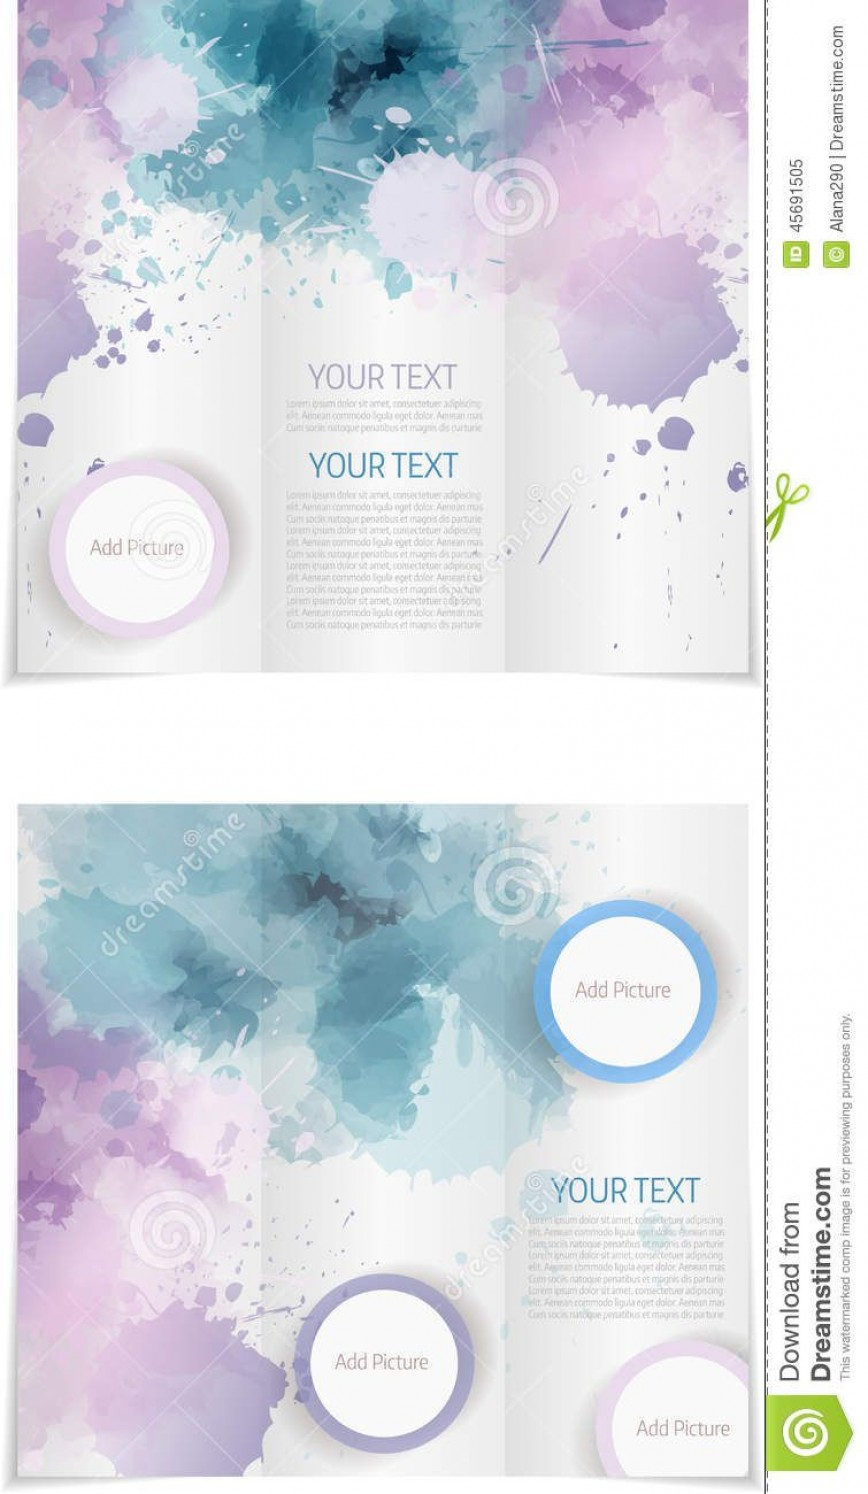 007 Awesome Word Tri Fold Brochure Template Photo  Microsoft Free Download M Flyer